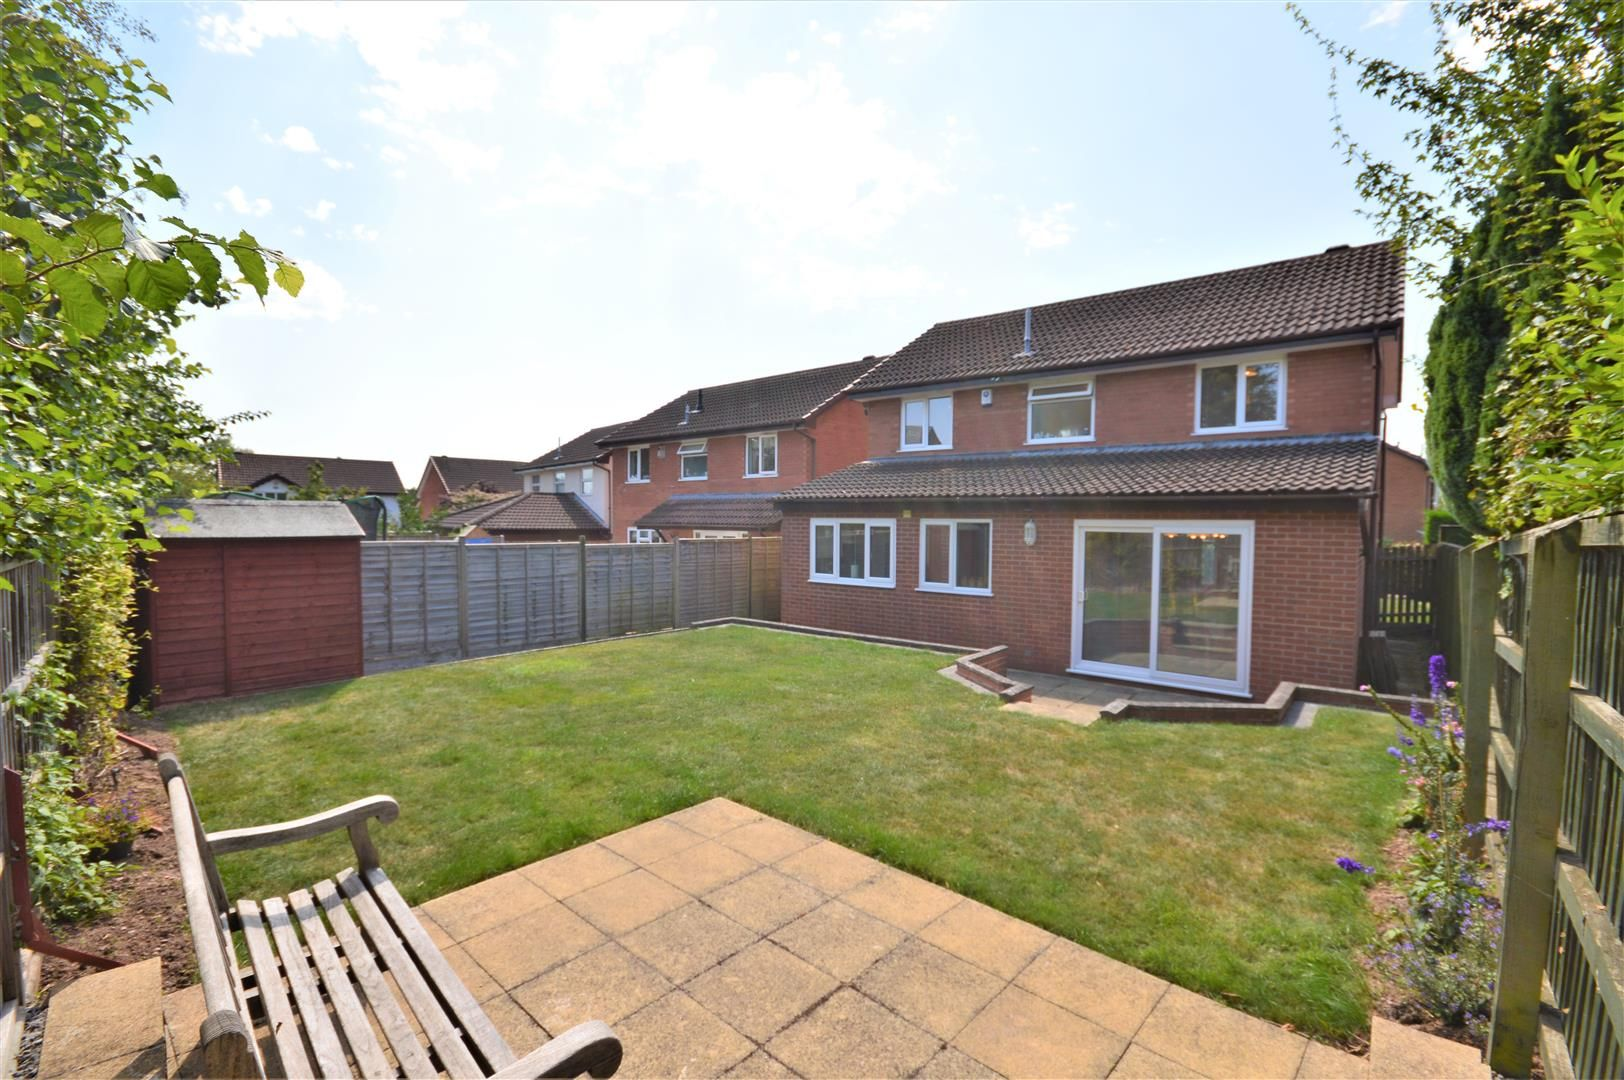 4 bed detached for sale in Hereford  - Property Image 18